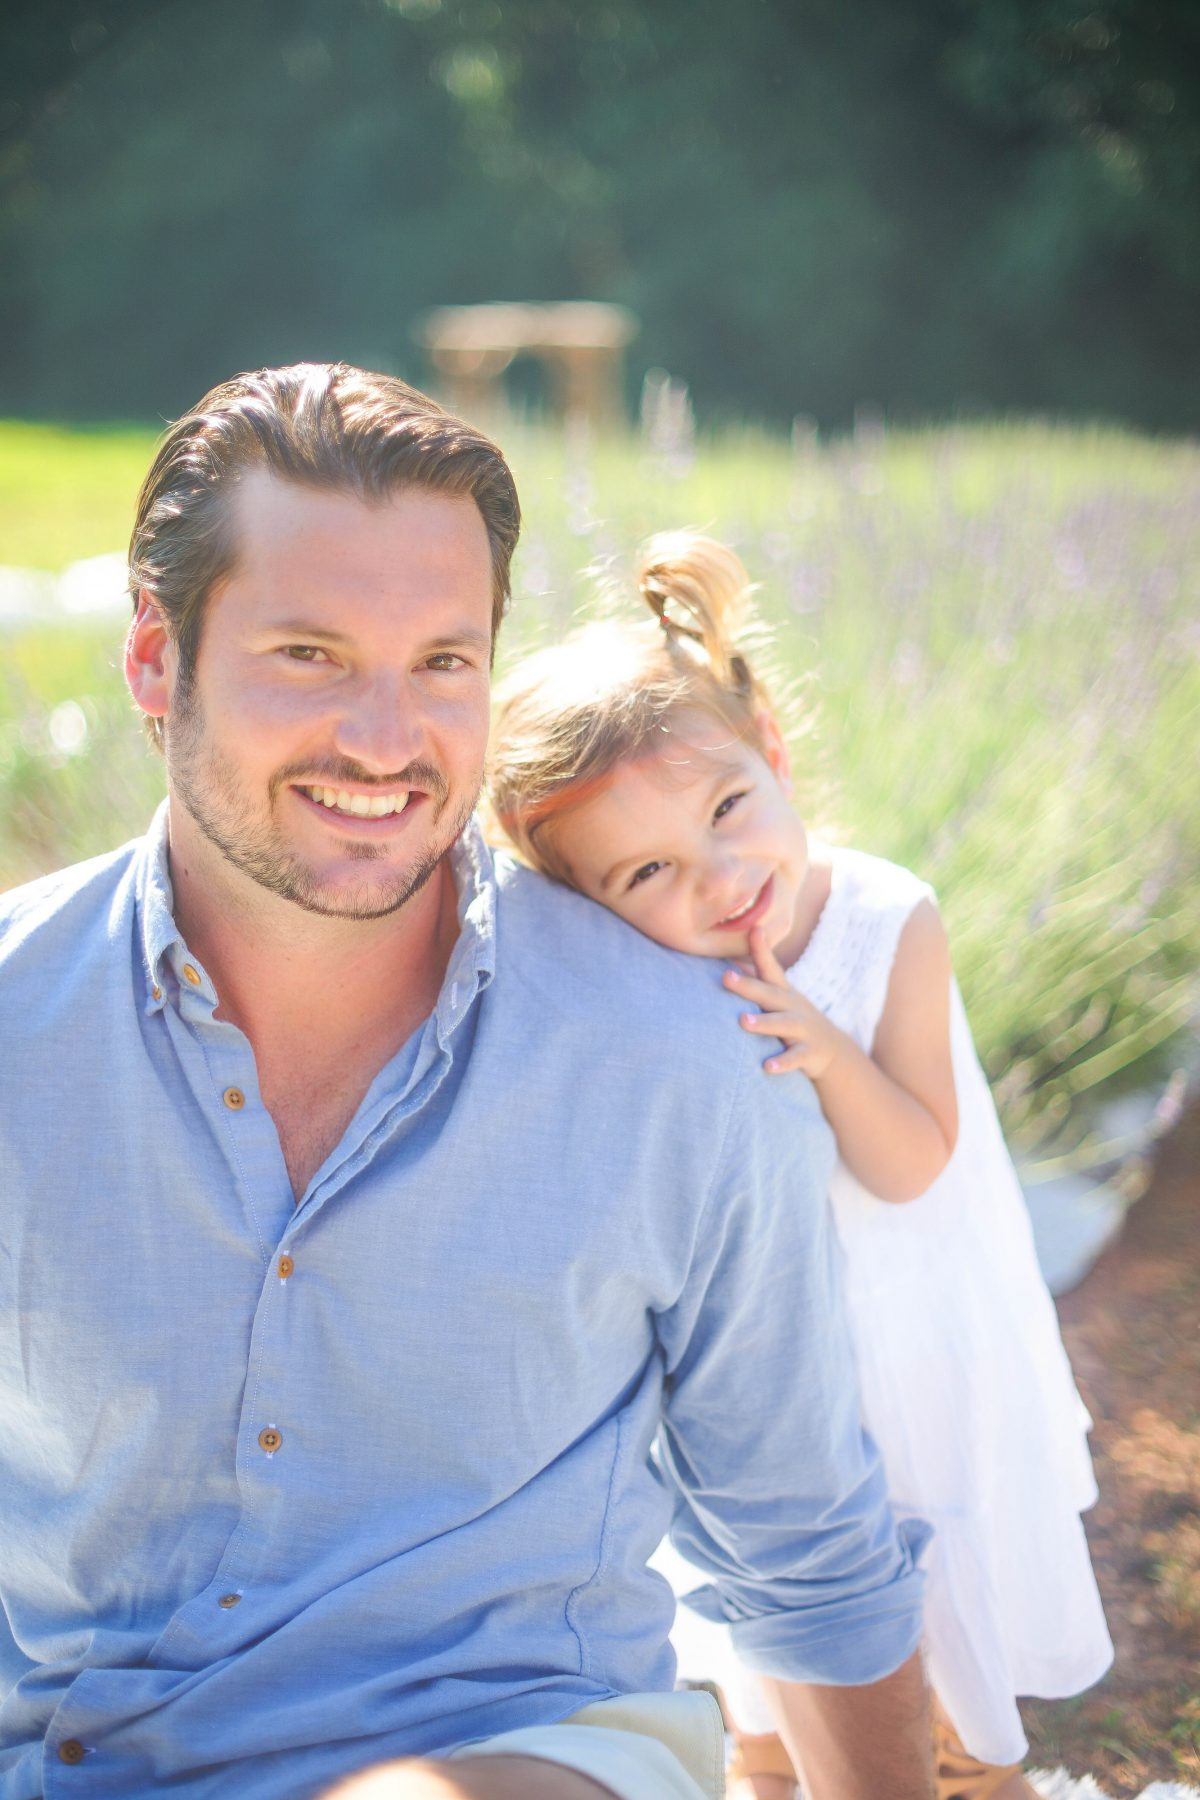 Daddy and Daughter Photo at Lavender Farm